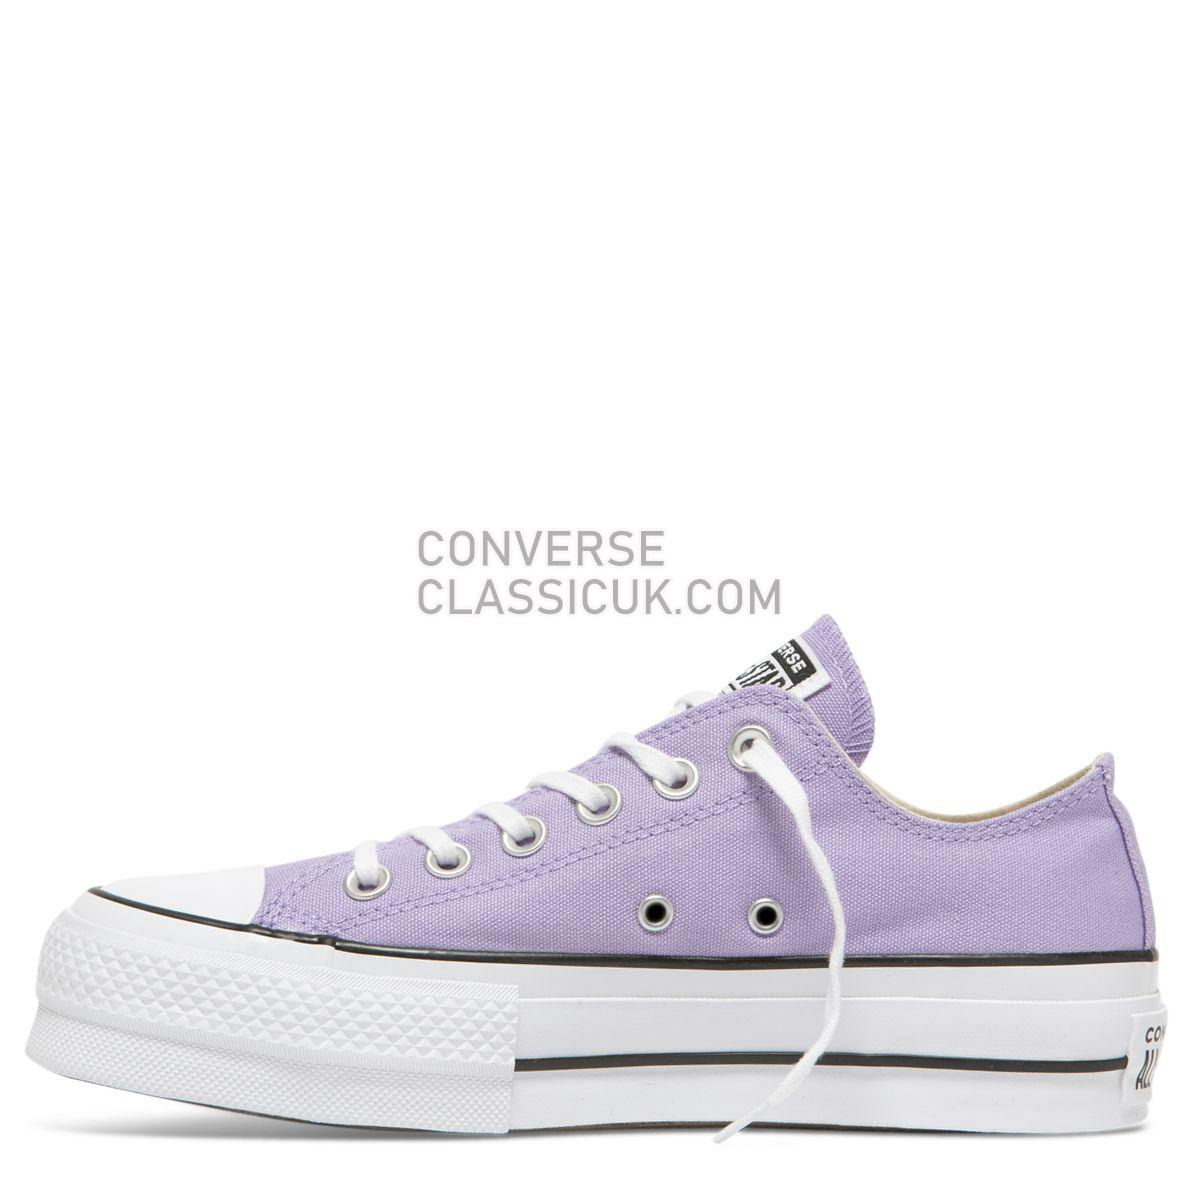 Converse Chuck Taylor All Star Seasonal Lift Low Top Washed Lilac Womens 564384 Washed Lilac/Black/White Shoes